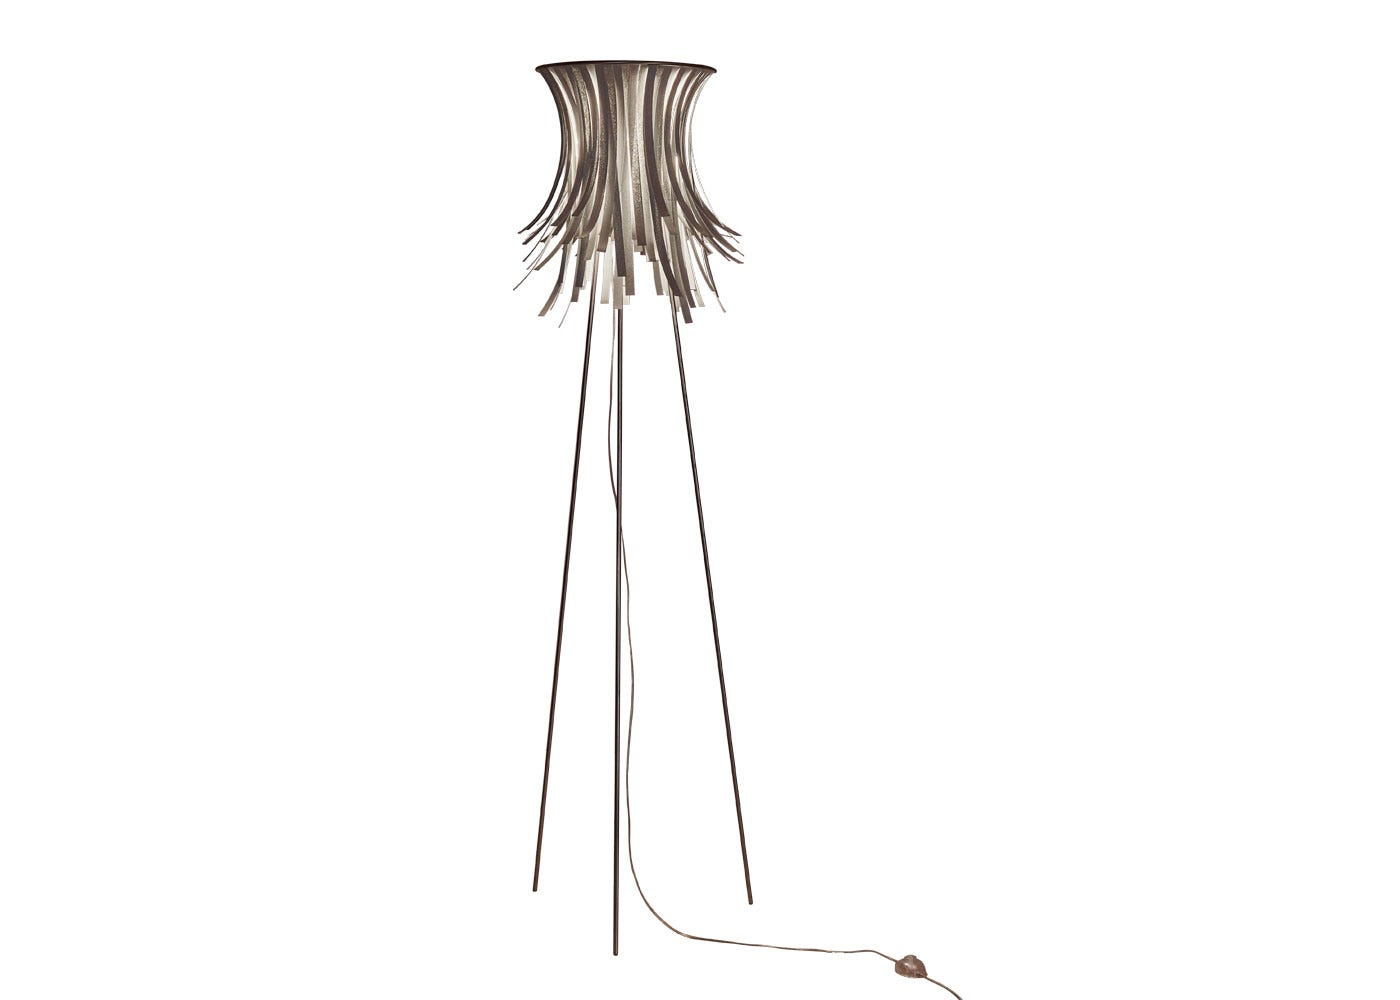 As shown: Bety Eco Floor Lamp.